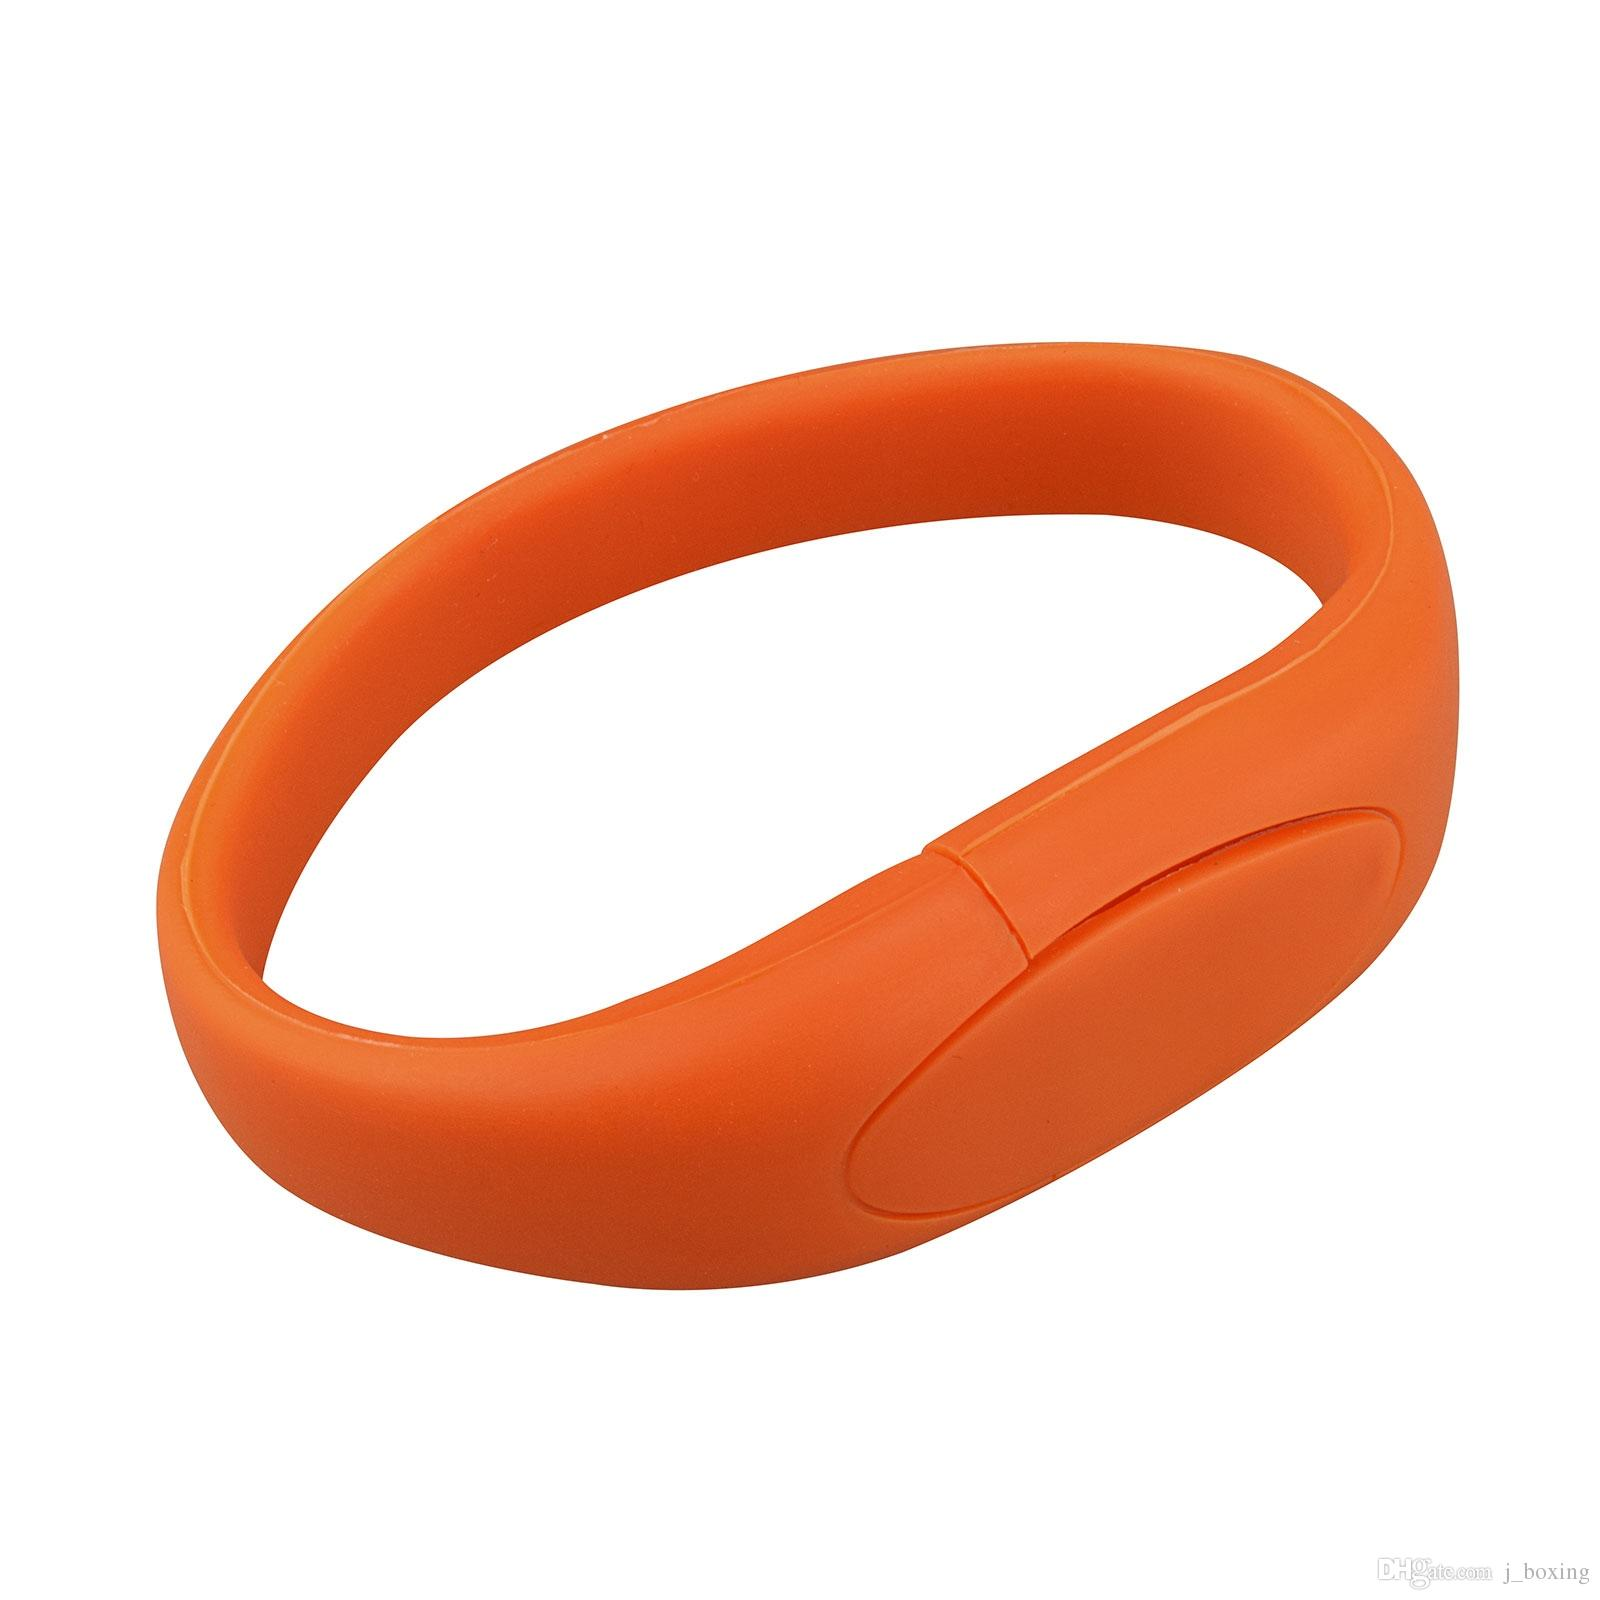 Orange Silicon Wristband Design 8GB 16GB 32GB 64GB USB 2.0 Memory Stick USB Flash Drives Thumb Pen Drives for PC Laptop Tablet Thumb Storage